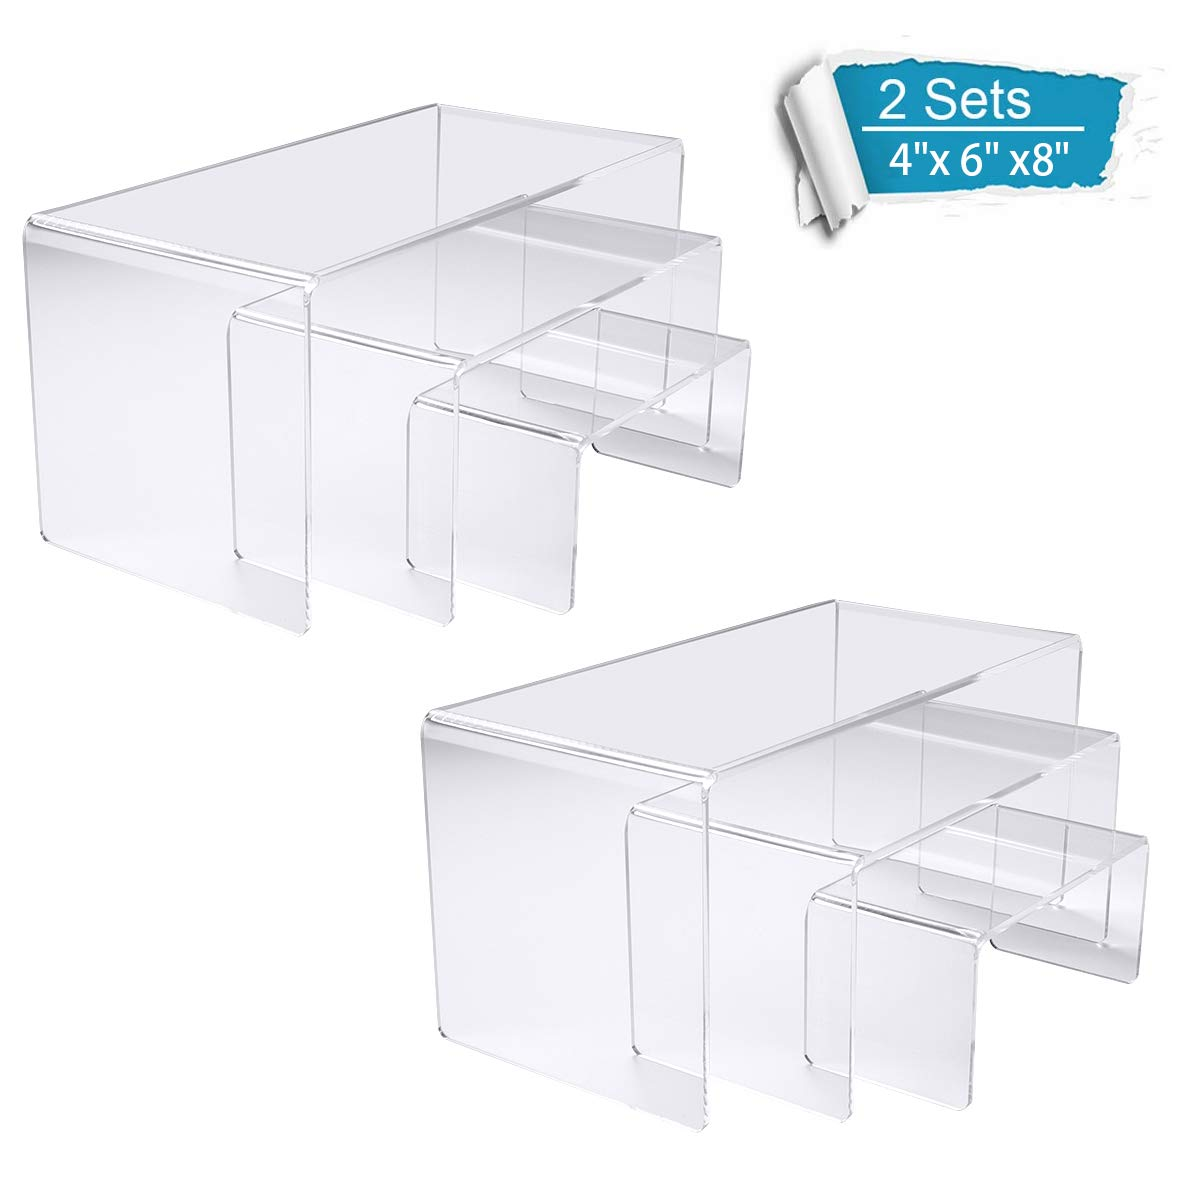 NIUBEE Acrylic Display Risers Stand 2 Sets,3 Steps Clear Riser Shelf Showcase for Amiibo Funko POP Figures -8.4''x6.3''x4.3'' by NIUBEE